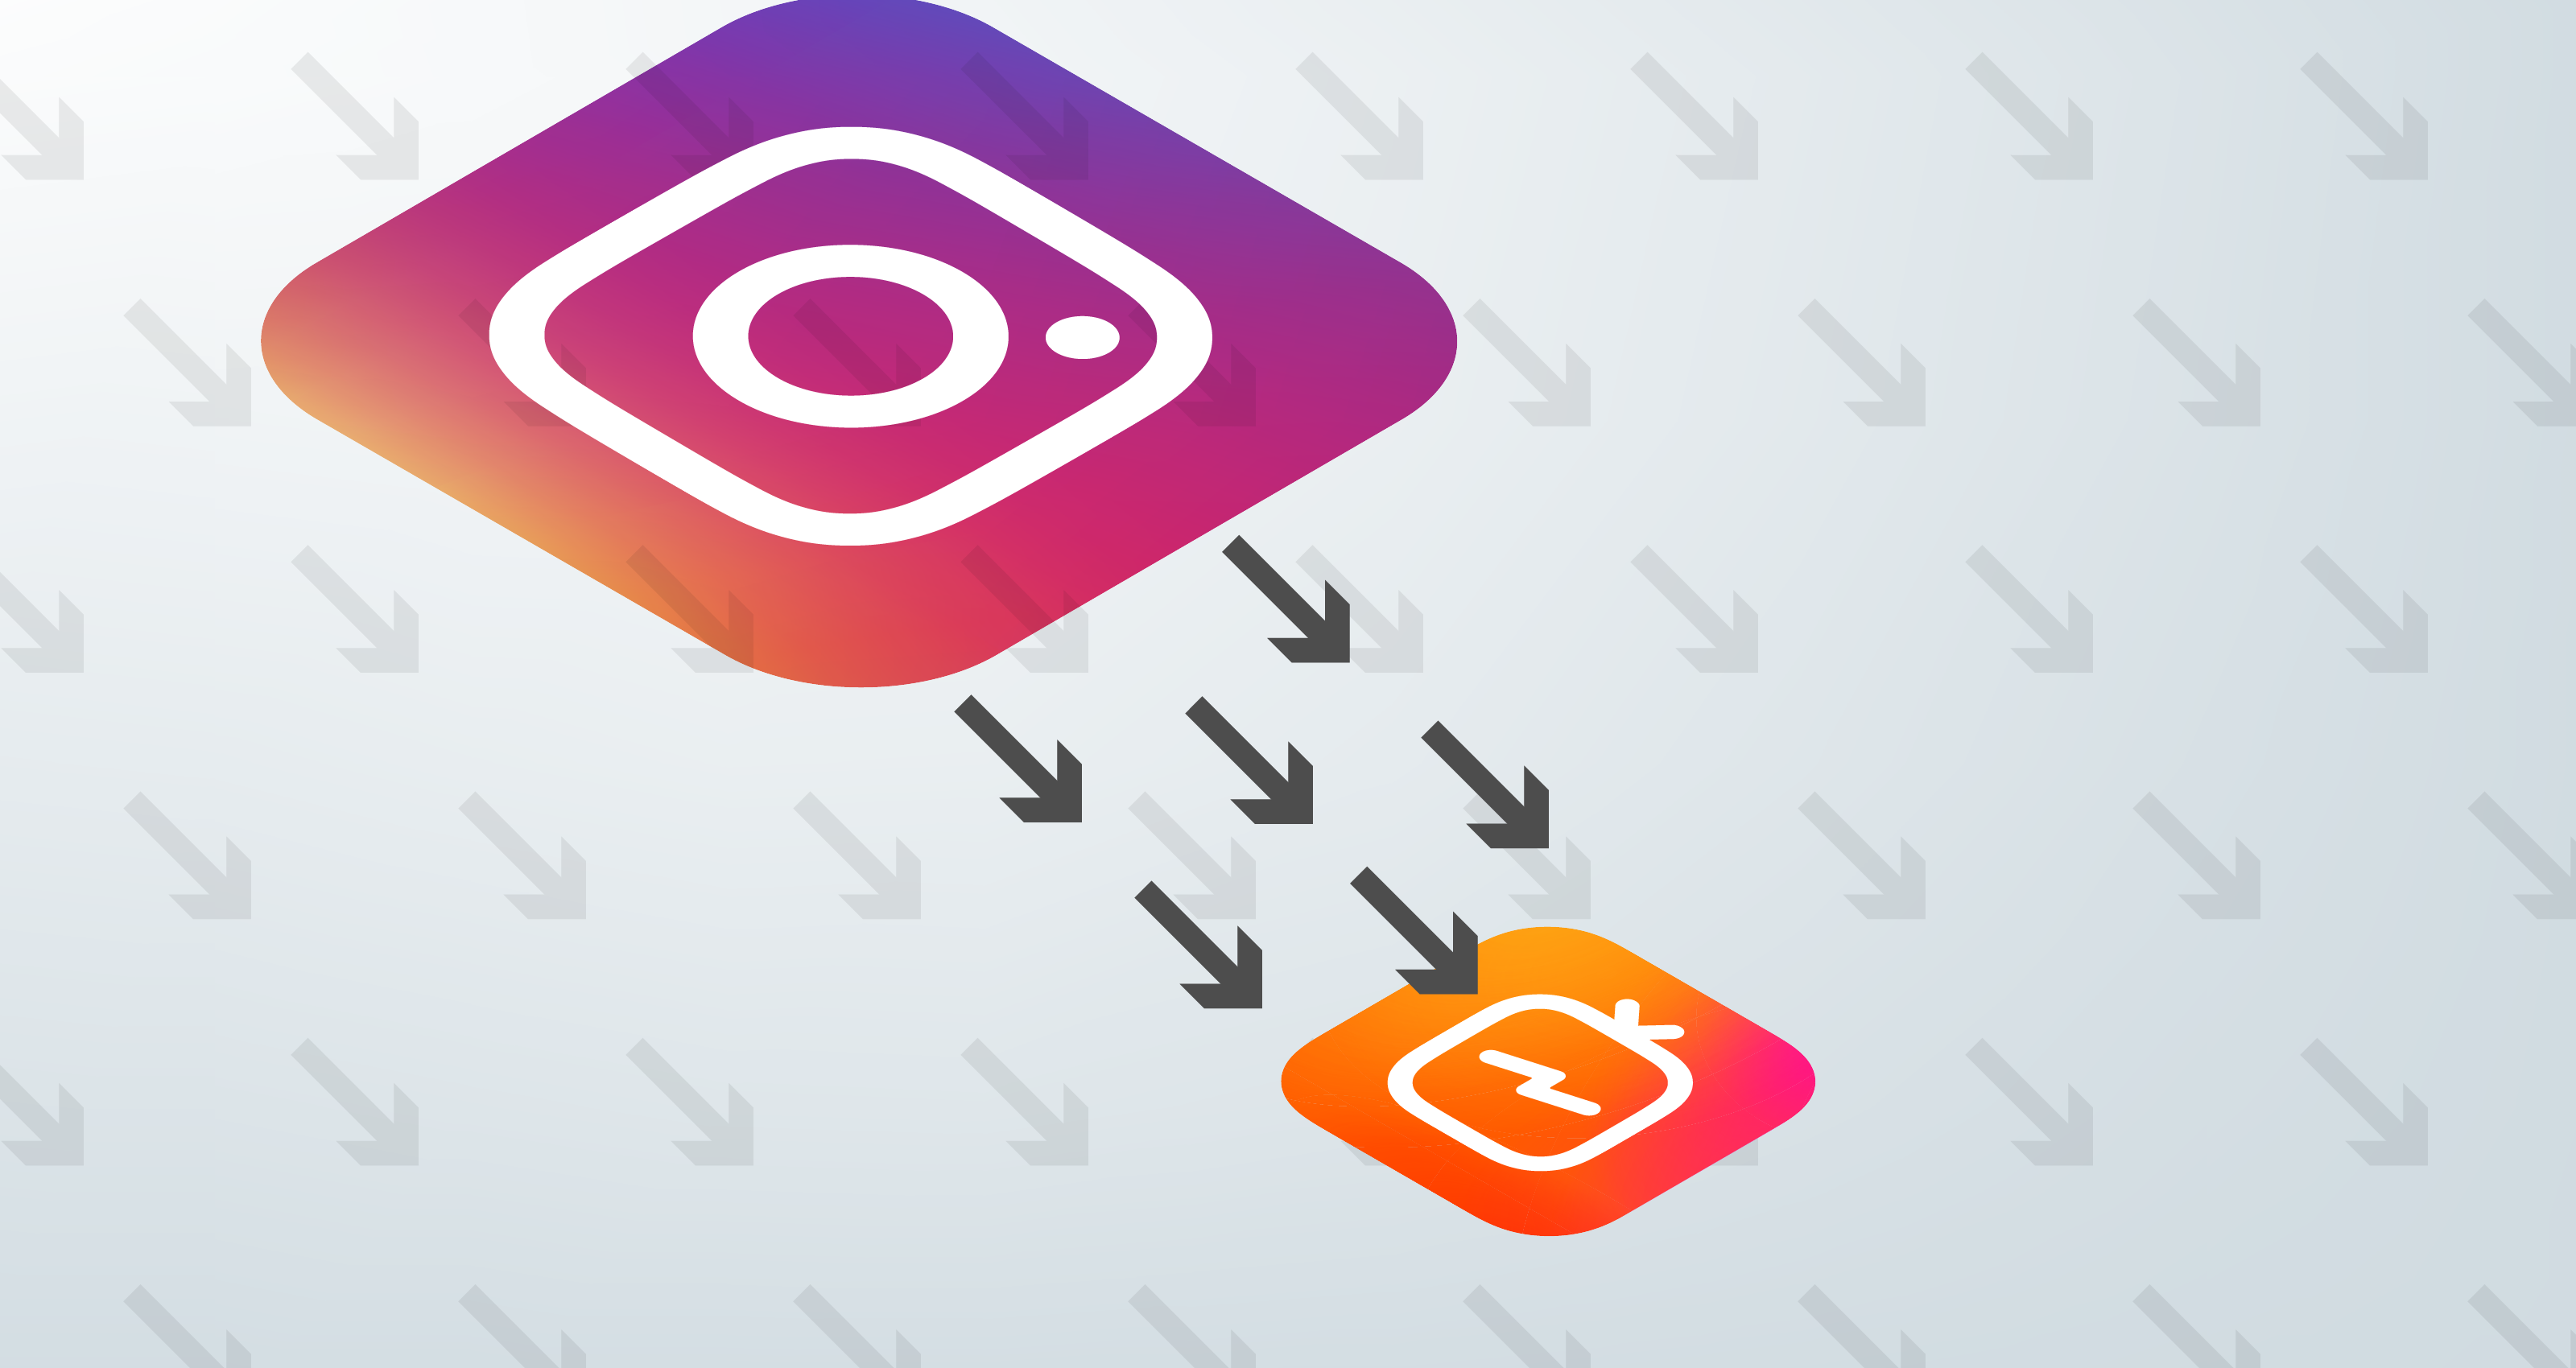 Instagram removes IGTV button from its app: Here's why